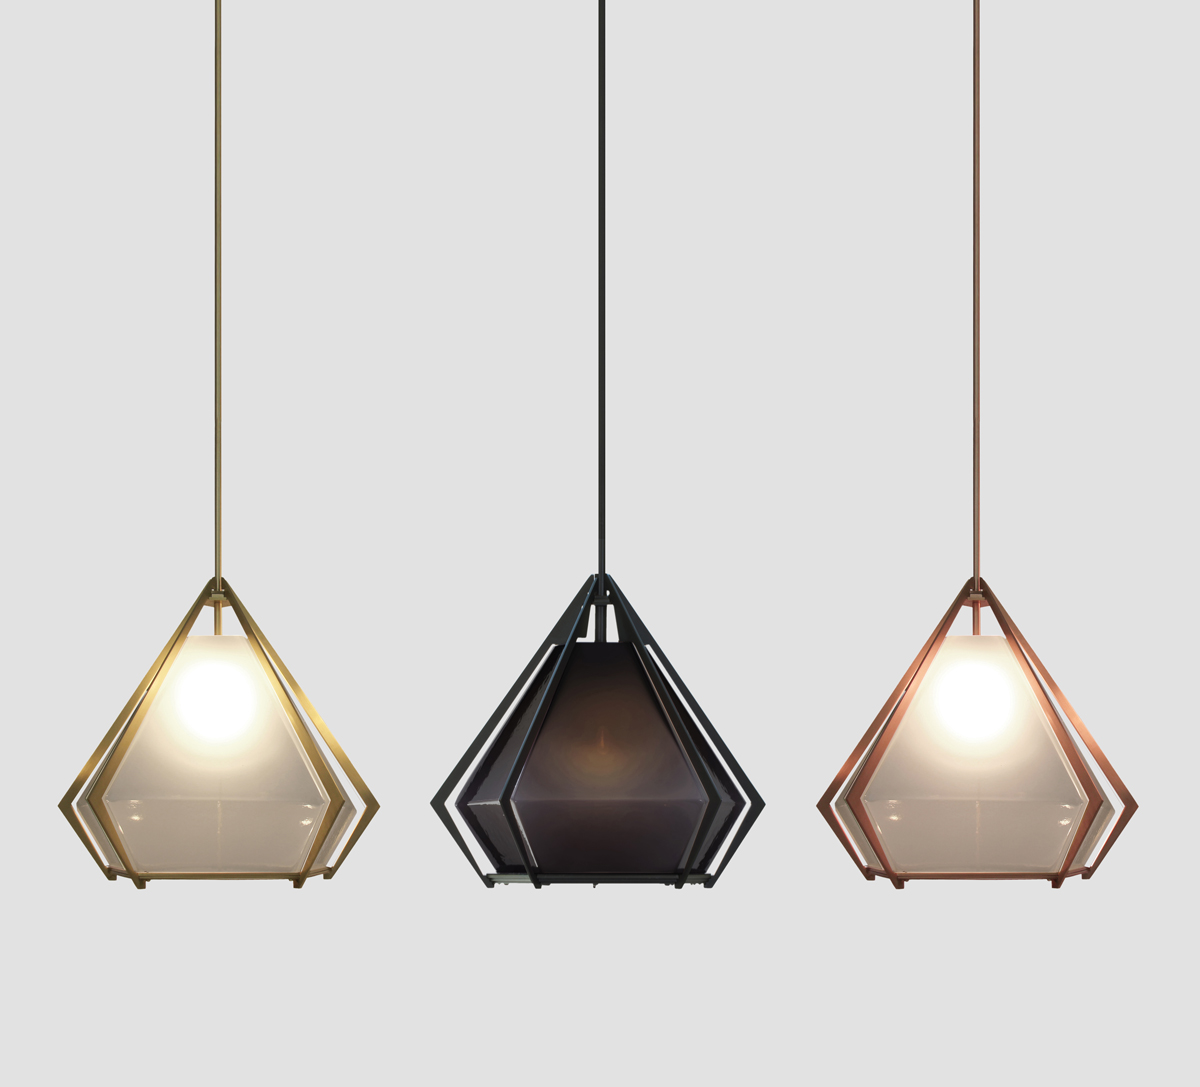 HARLOW-Pendant-Brass-Black-Copper-All-3-Together-GRY-web.jpg